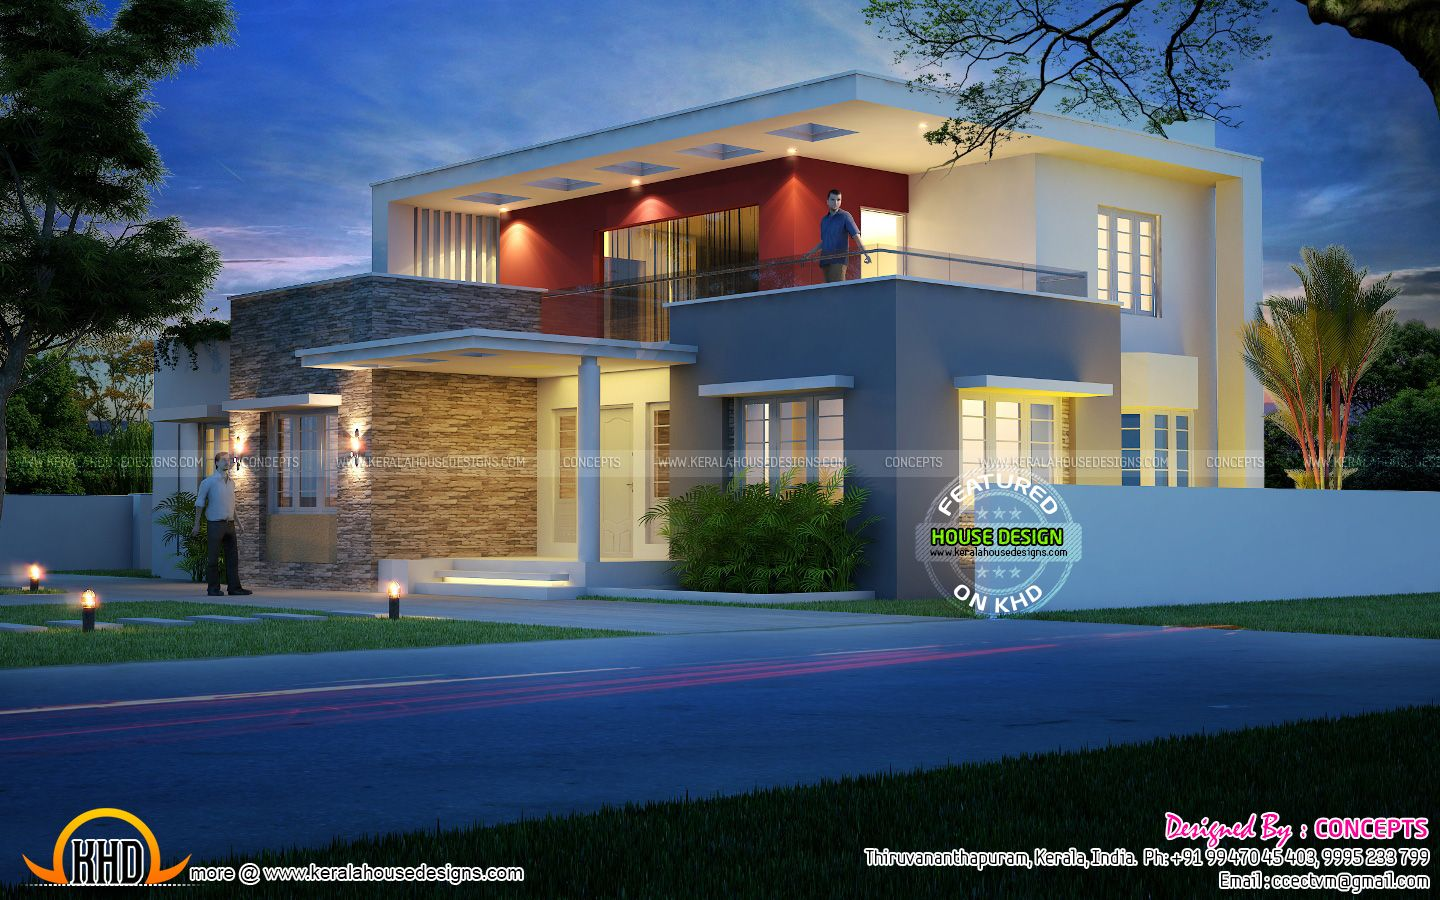 Traditional House Plans One Story With Low Cost Well Suited Home Interior Under 3000 Sq Ft Very Traditional House Plans House Plans With Pictures House Plans